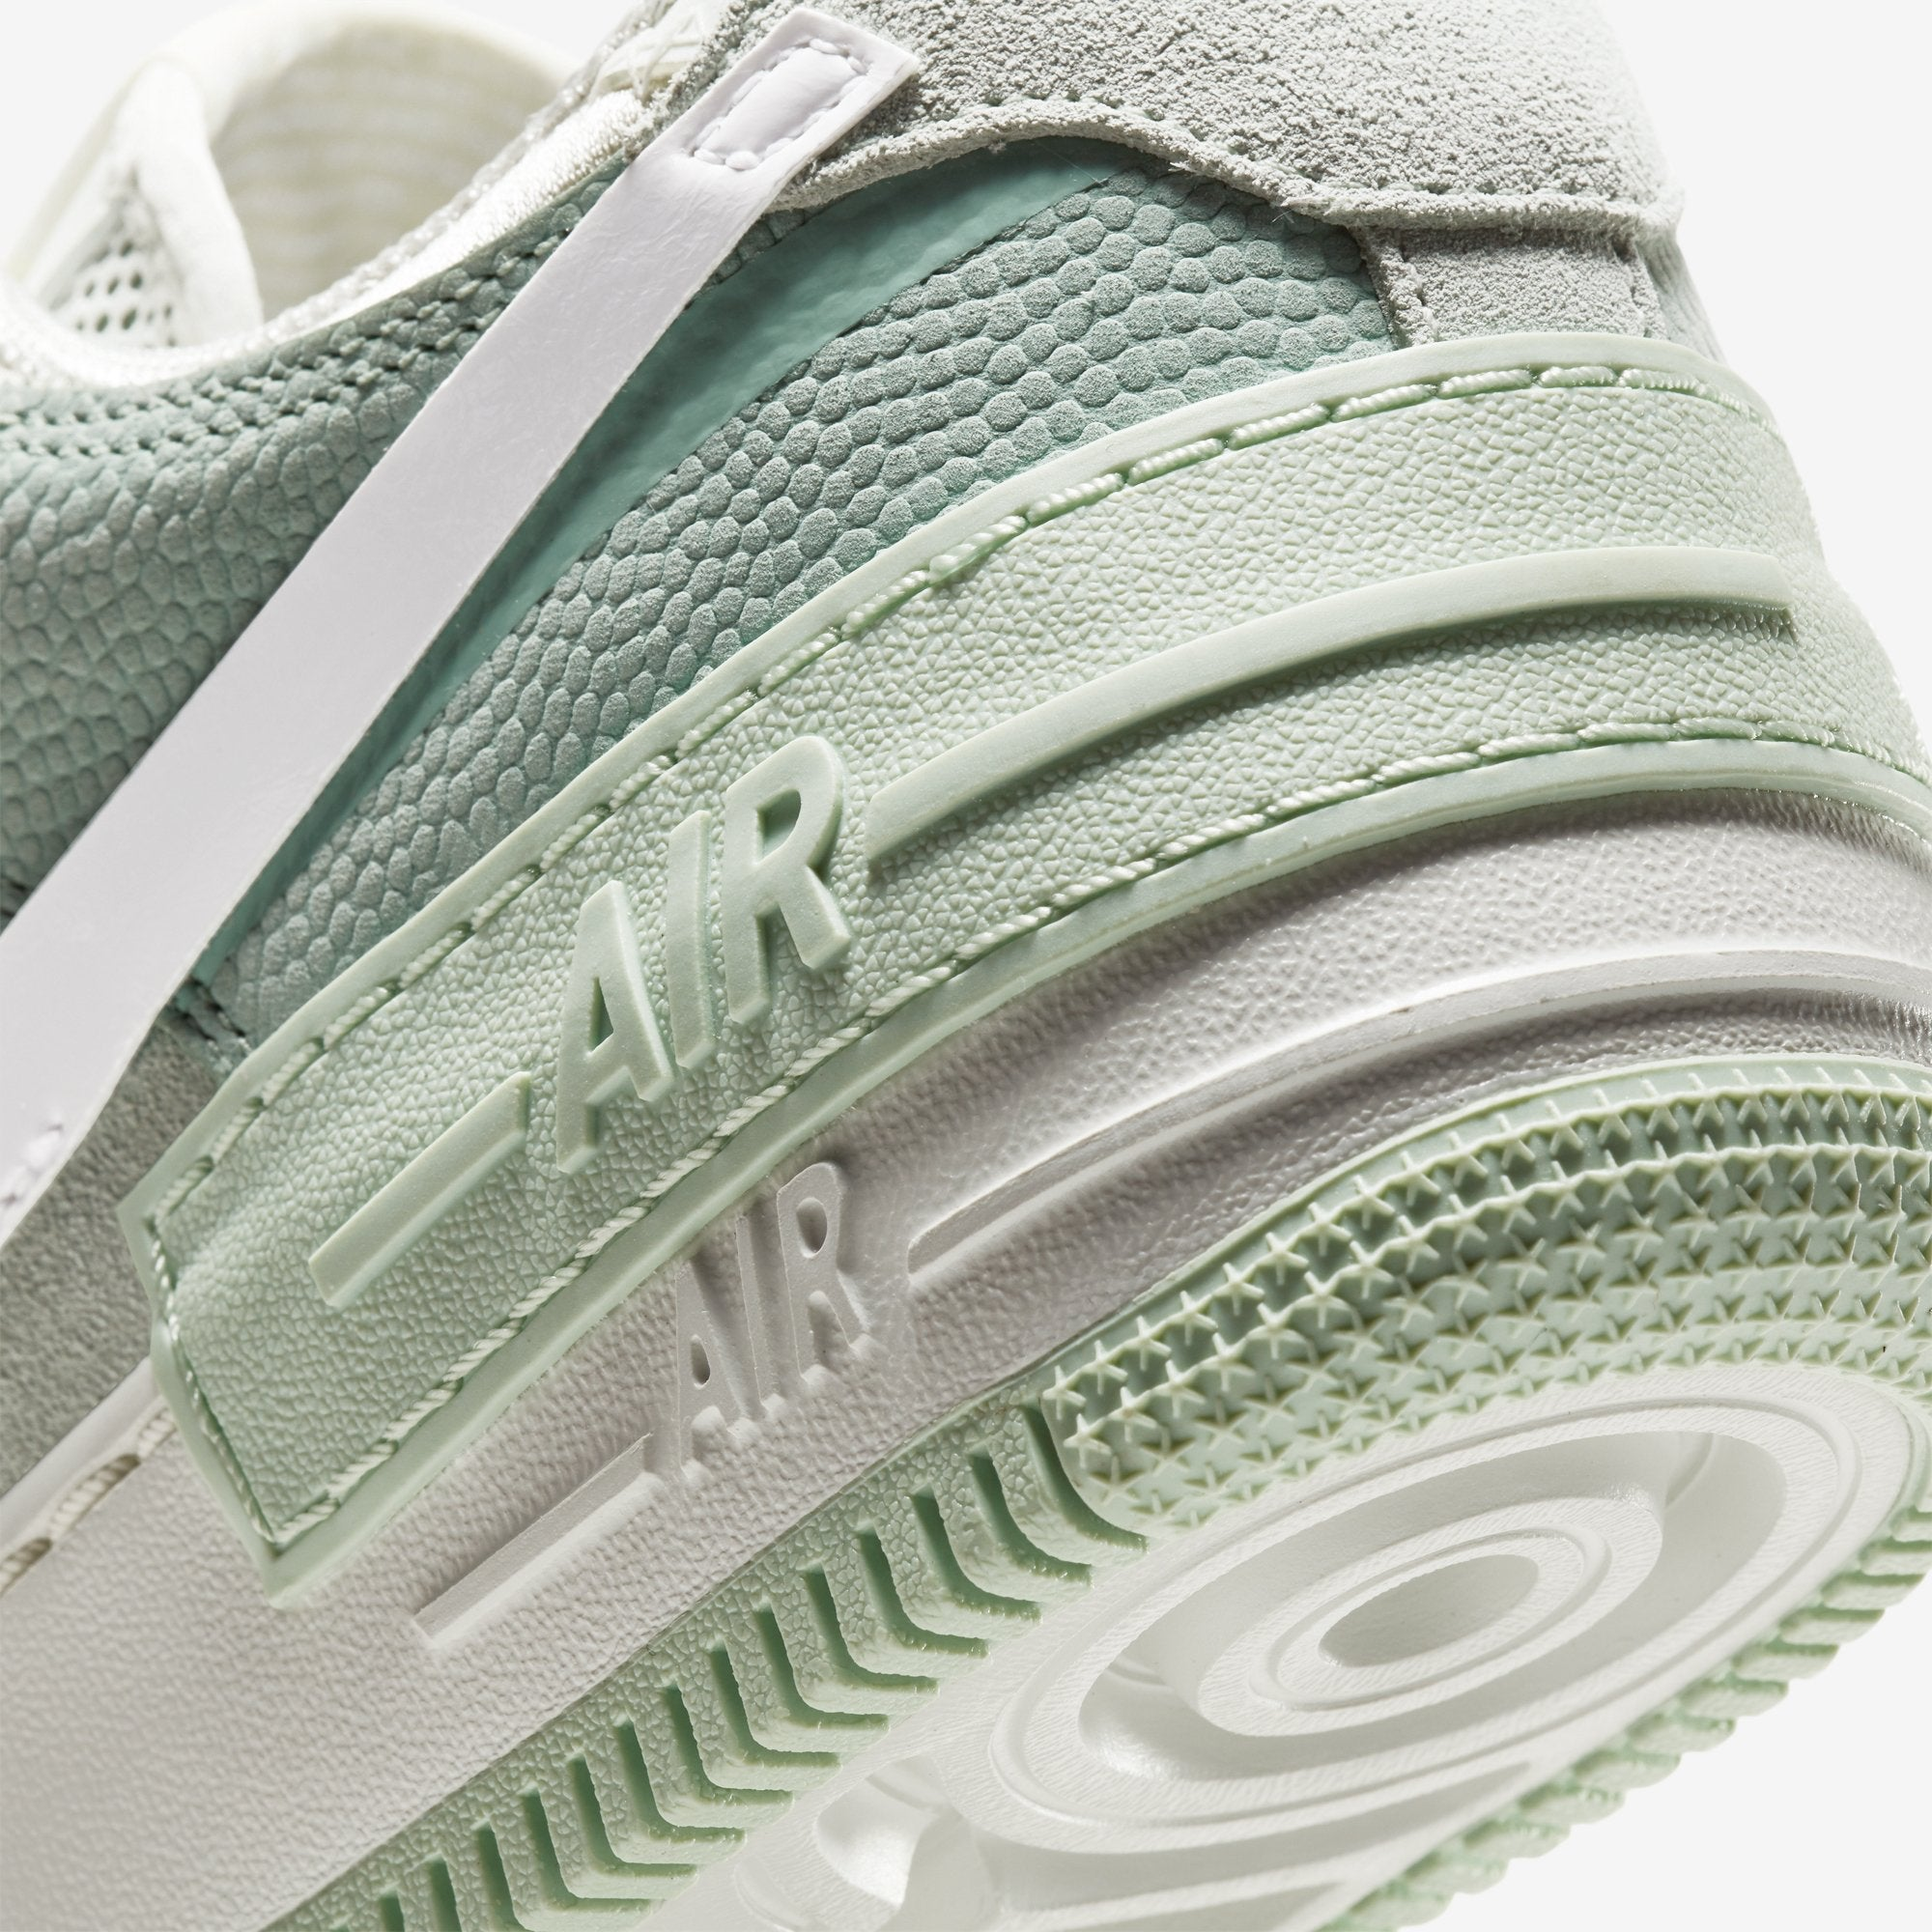 Nike Air Force 1 Shadow Pistachio Frost Cw2655 001 Women Sneakers Sneakerbaas Com Green Get the best deal for nike air force 1 sneakers for women from the largest online selection at ebay.com. nike air force 1 shadow pistachio